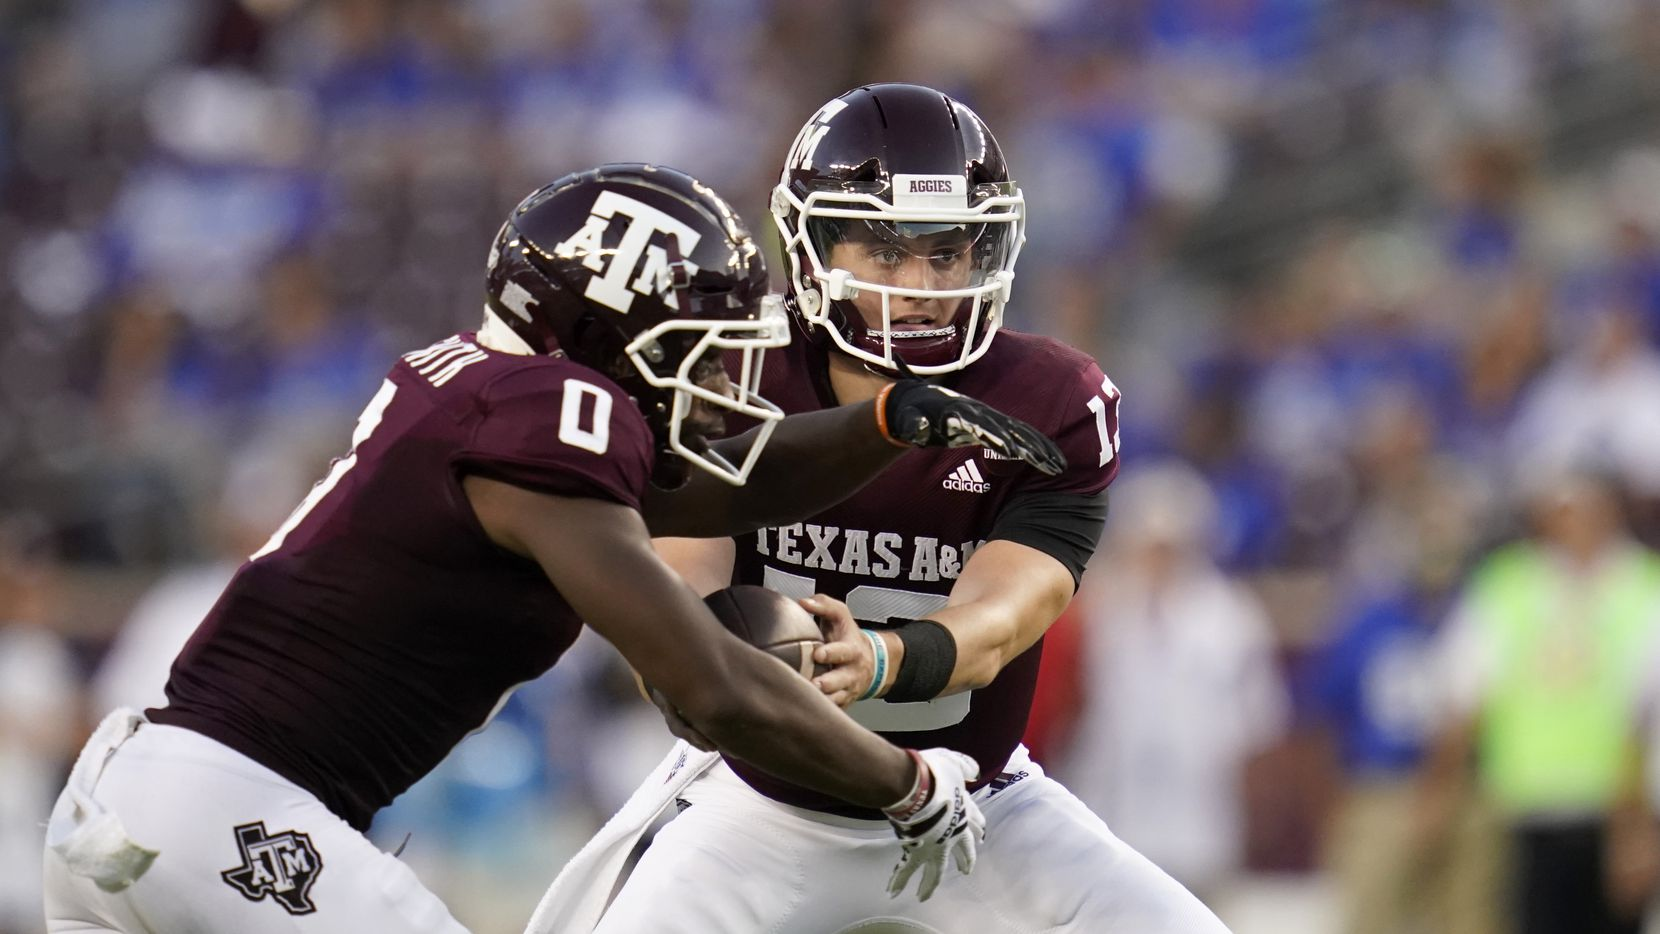 Texas A&M quarterback Haynes King (13) hands the ball off to Texas A&M wide receiver Ainias Smith (0) during the first quarter of an NCAA college football game on Saturday, Sept. 4, 2021, in College Station, Texas.